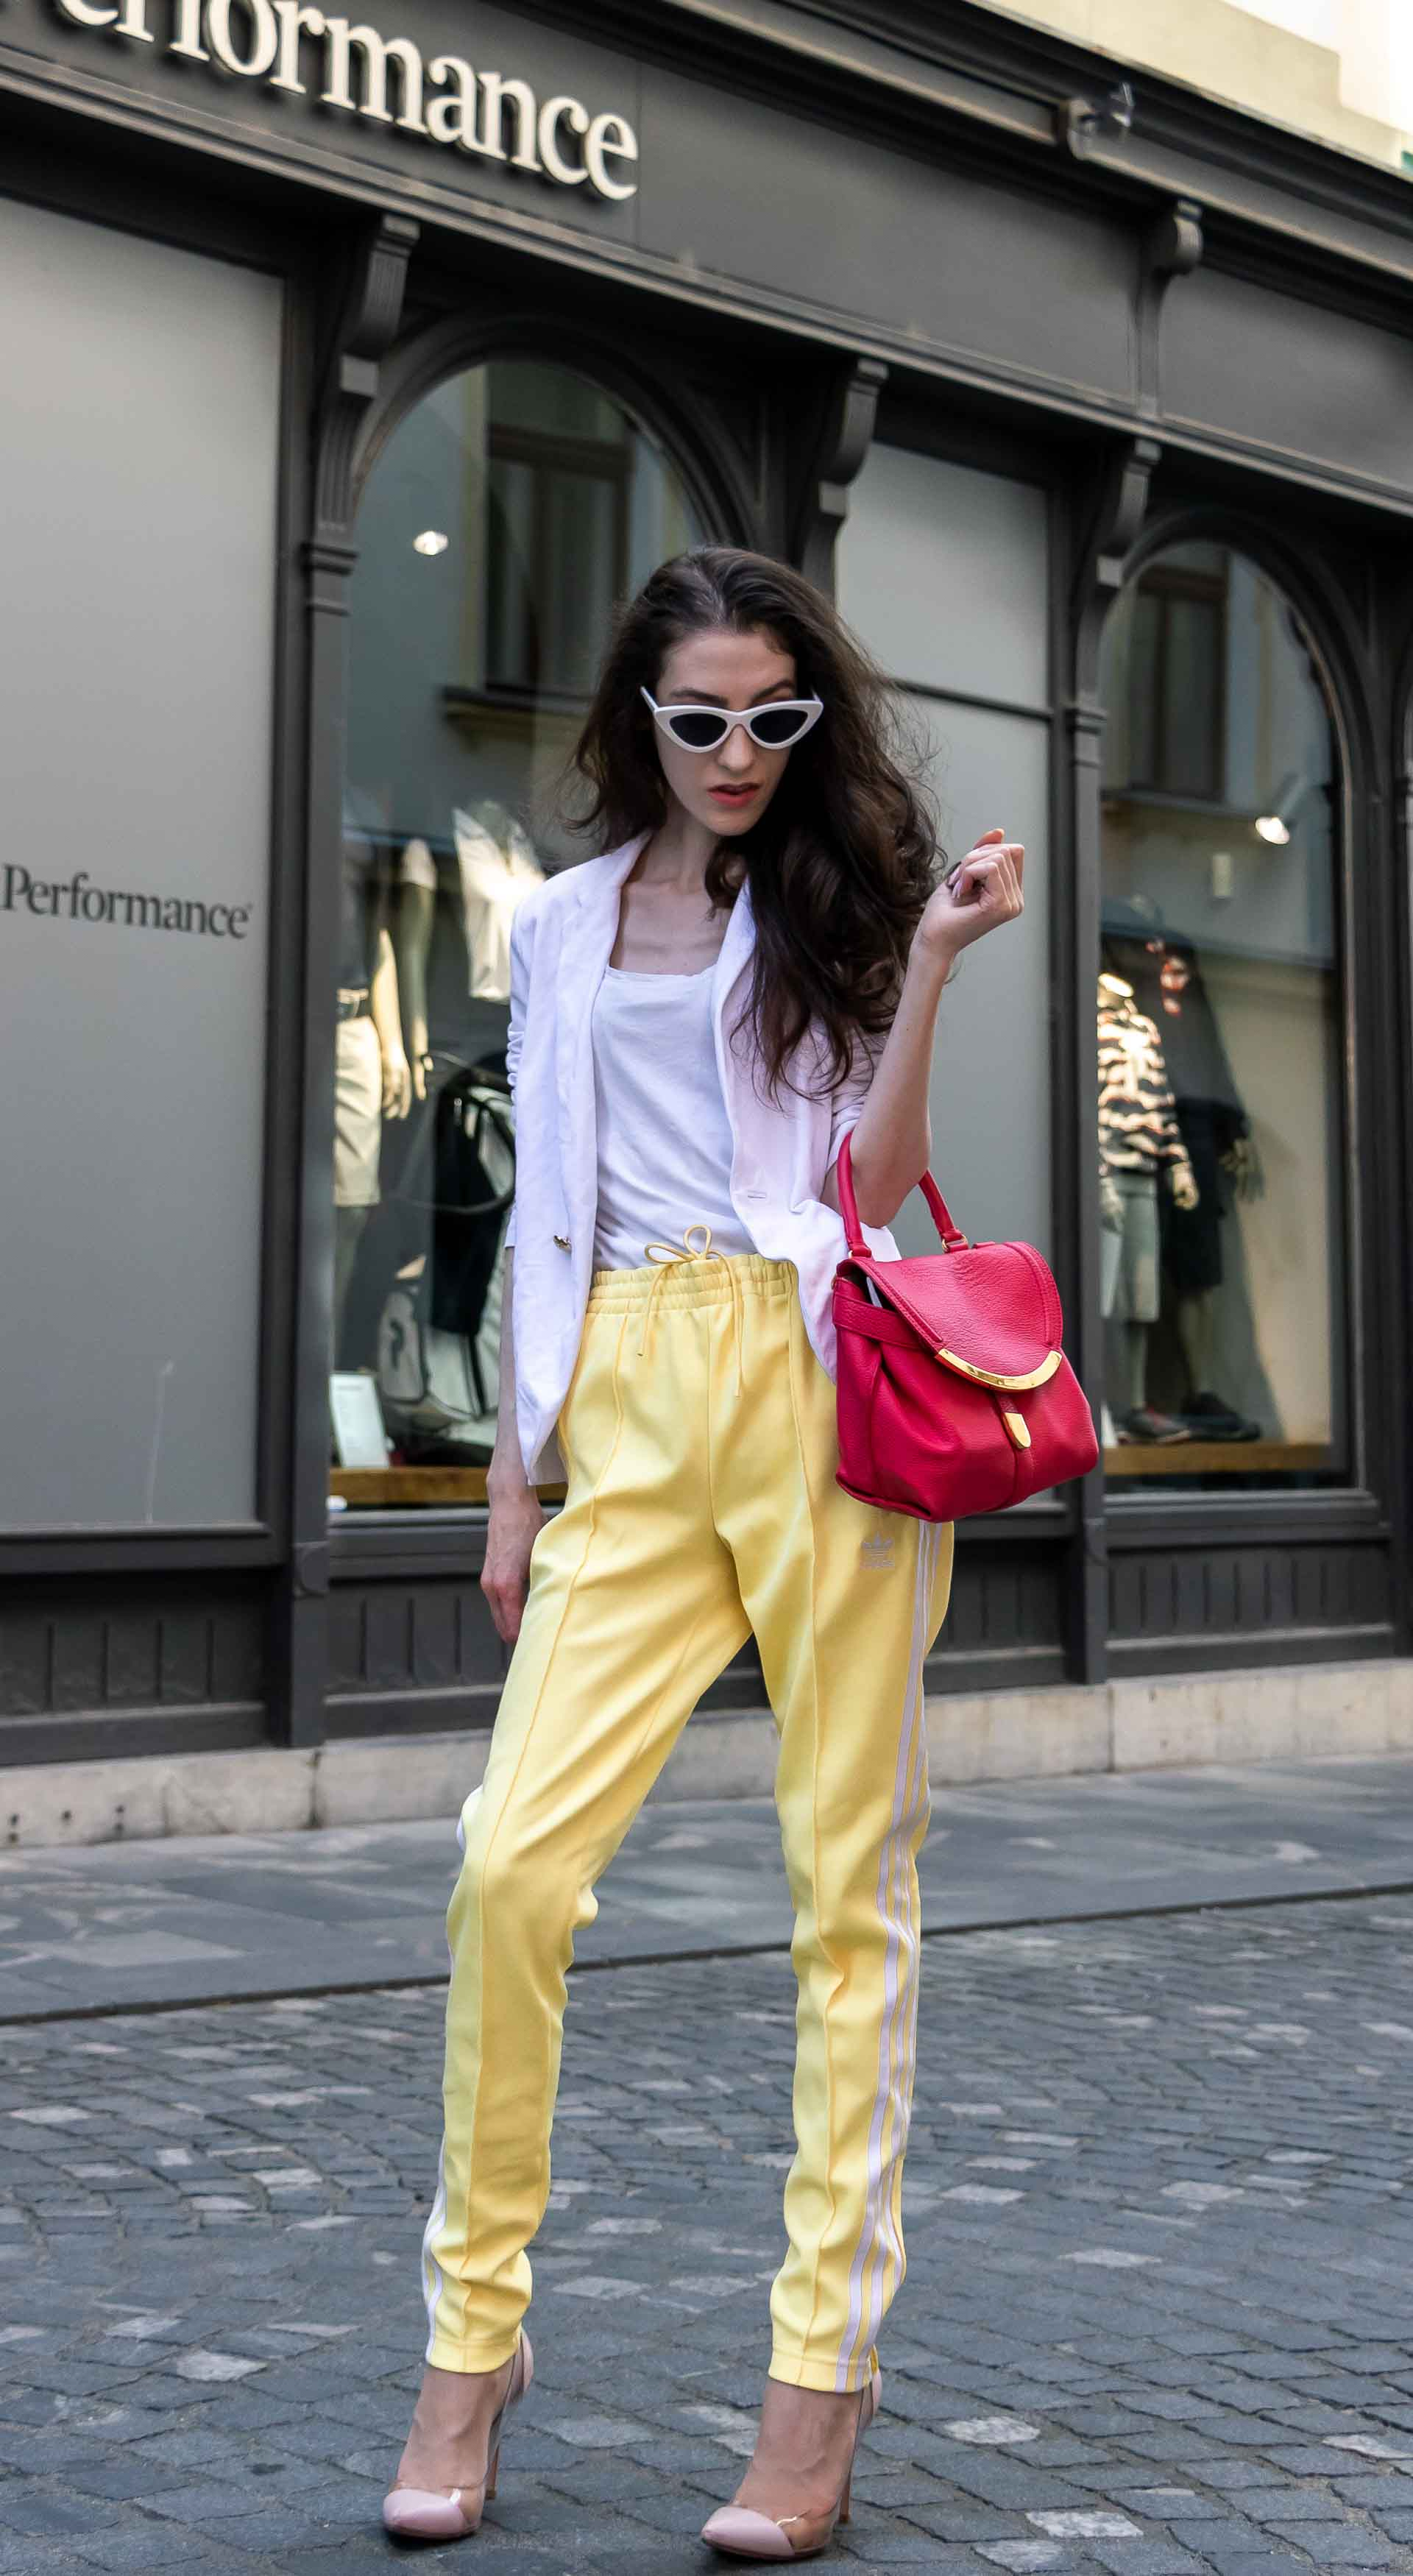 Veronika Lipar Fashion Editor of Brunette from Wall Street dressed in chic casual white blazer, white H&M t-shirt, yellow Addidas track pants, See by Chloé pink top handle bag, Adam Selman x Le Specs white cat eye Lolita sunglasses, pink blush Gianvito Rossi plexi pumps on the street